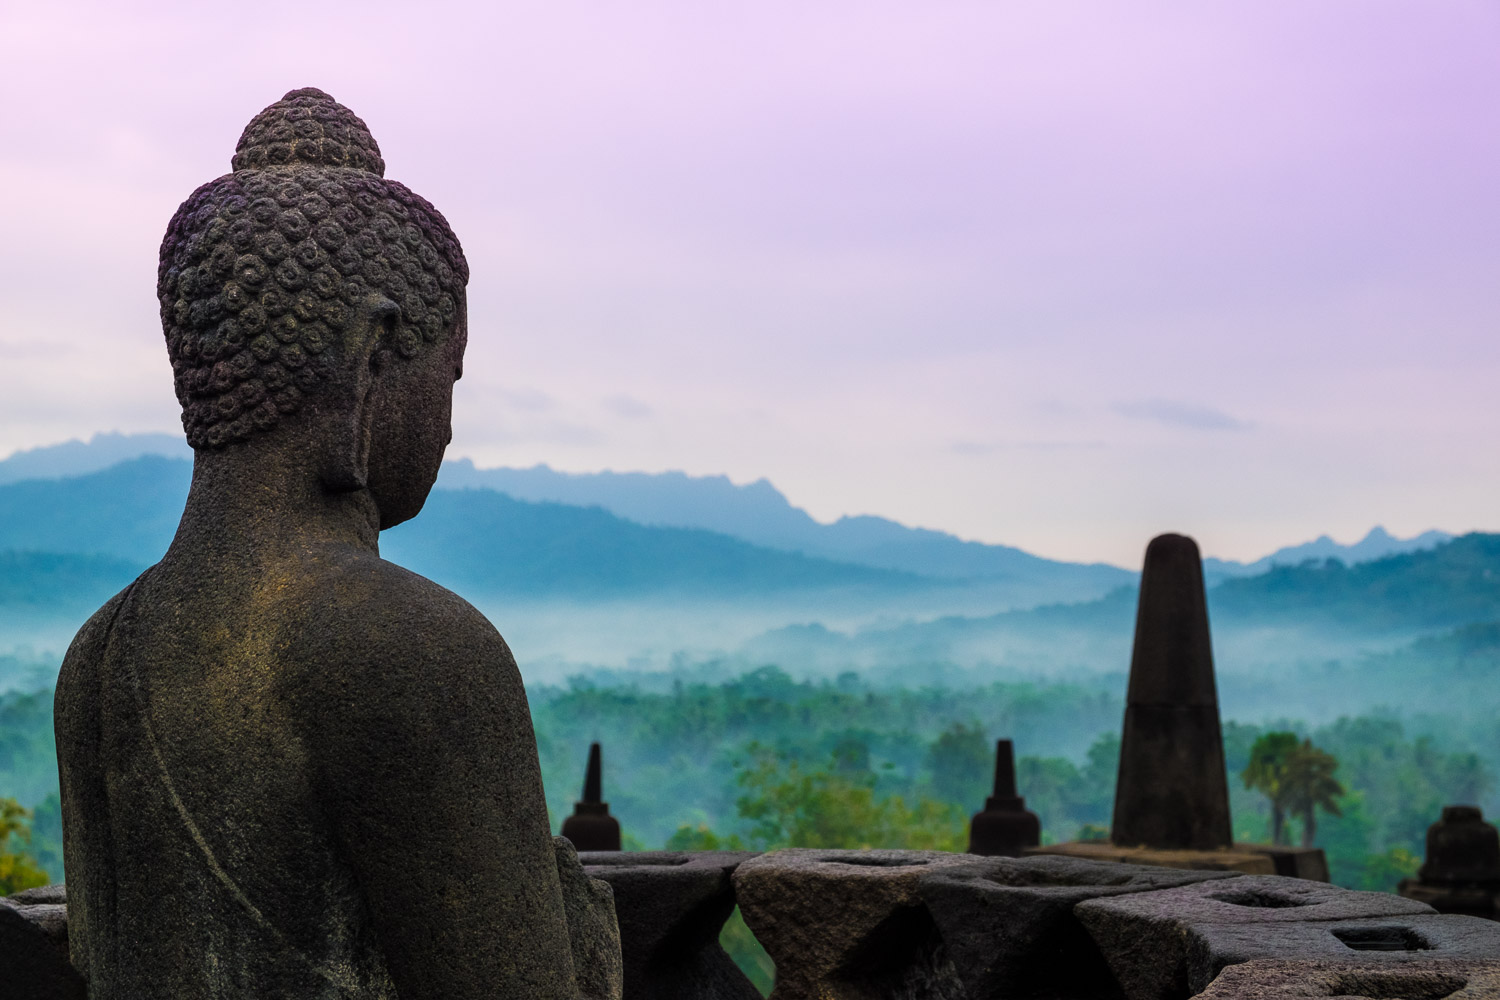 https://i1.wp.com/digital-photography-school.com/wp-content/uploads/2019/03/MattMurray-Borobudur.jpg?resize=1500%2C1000&ssl=1